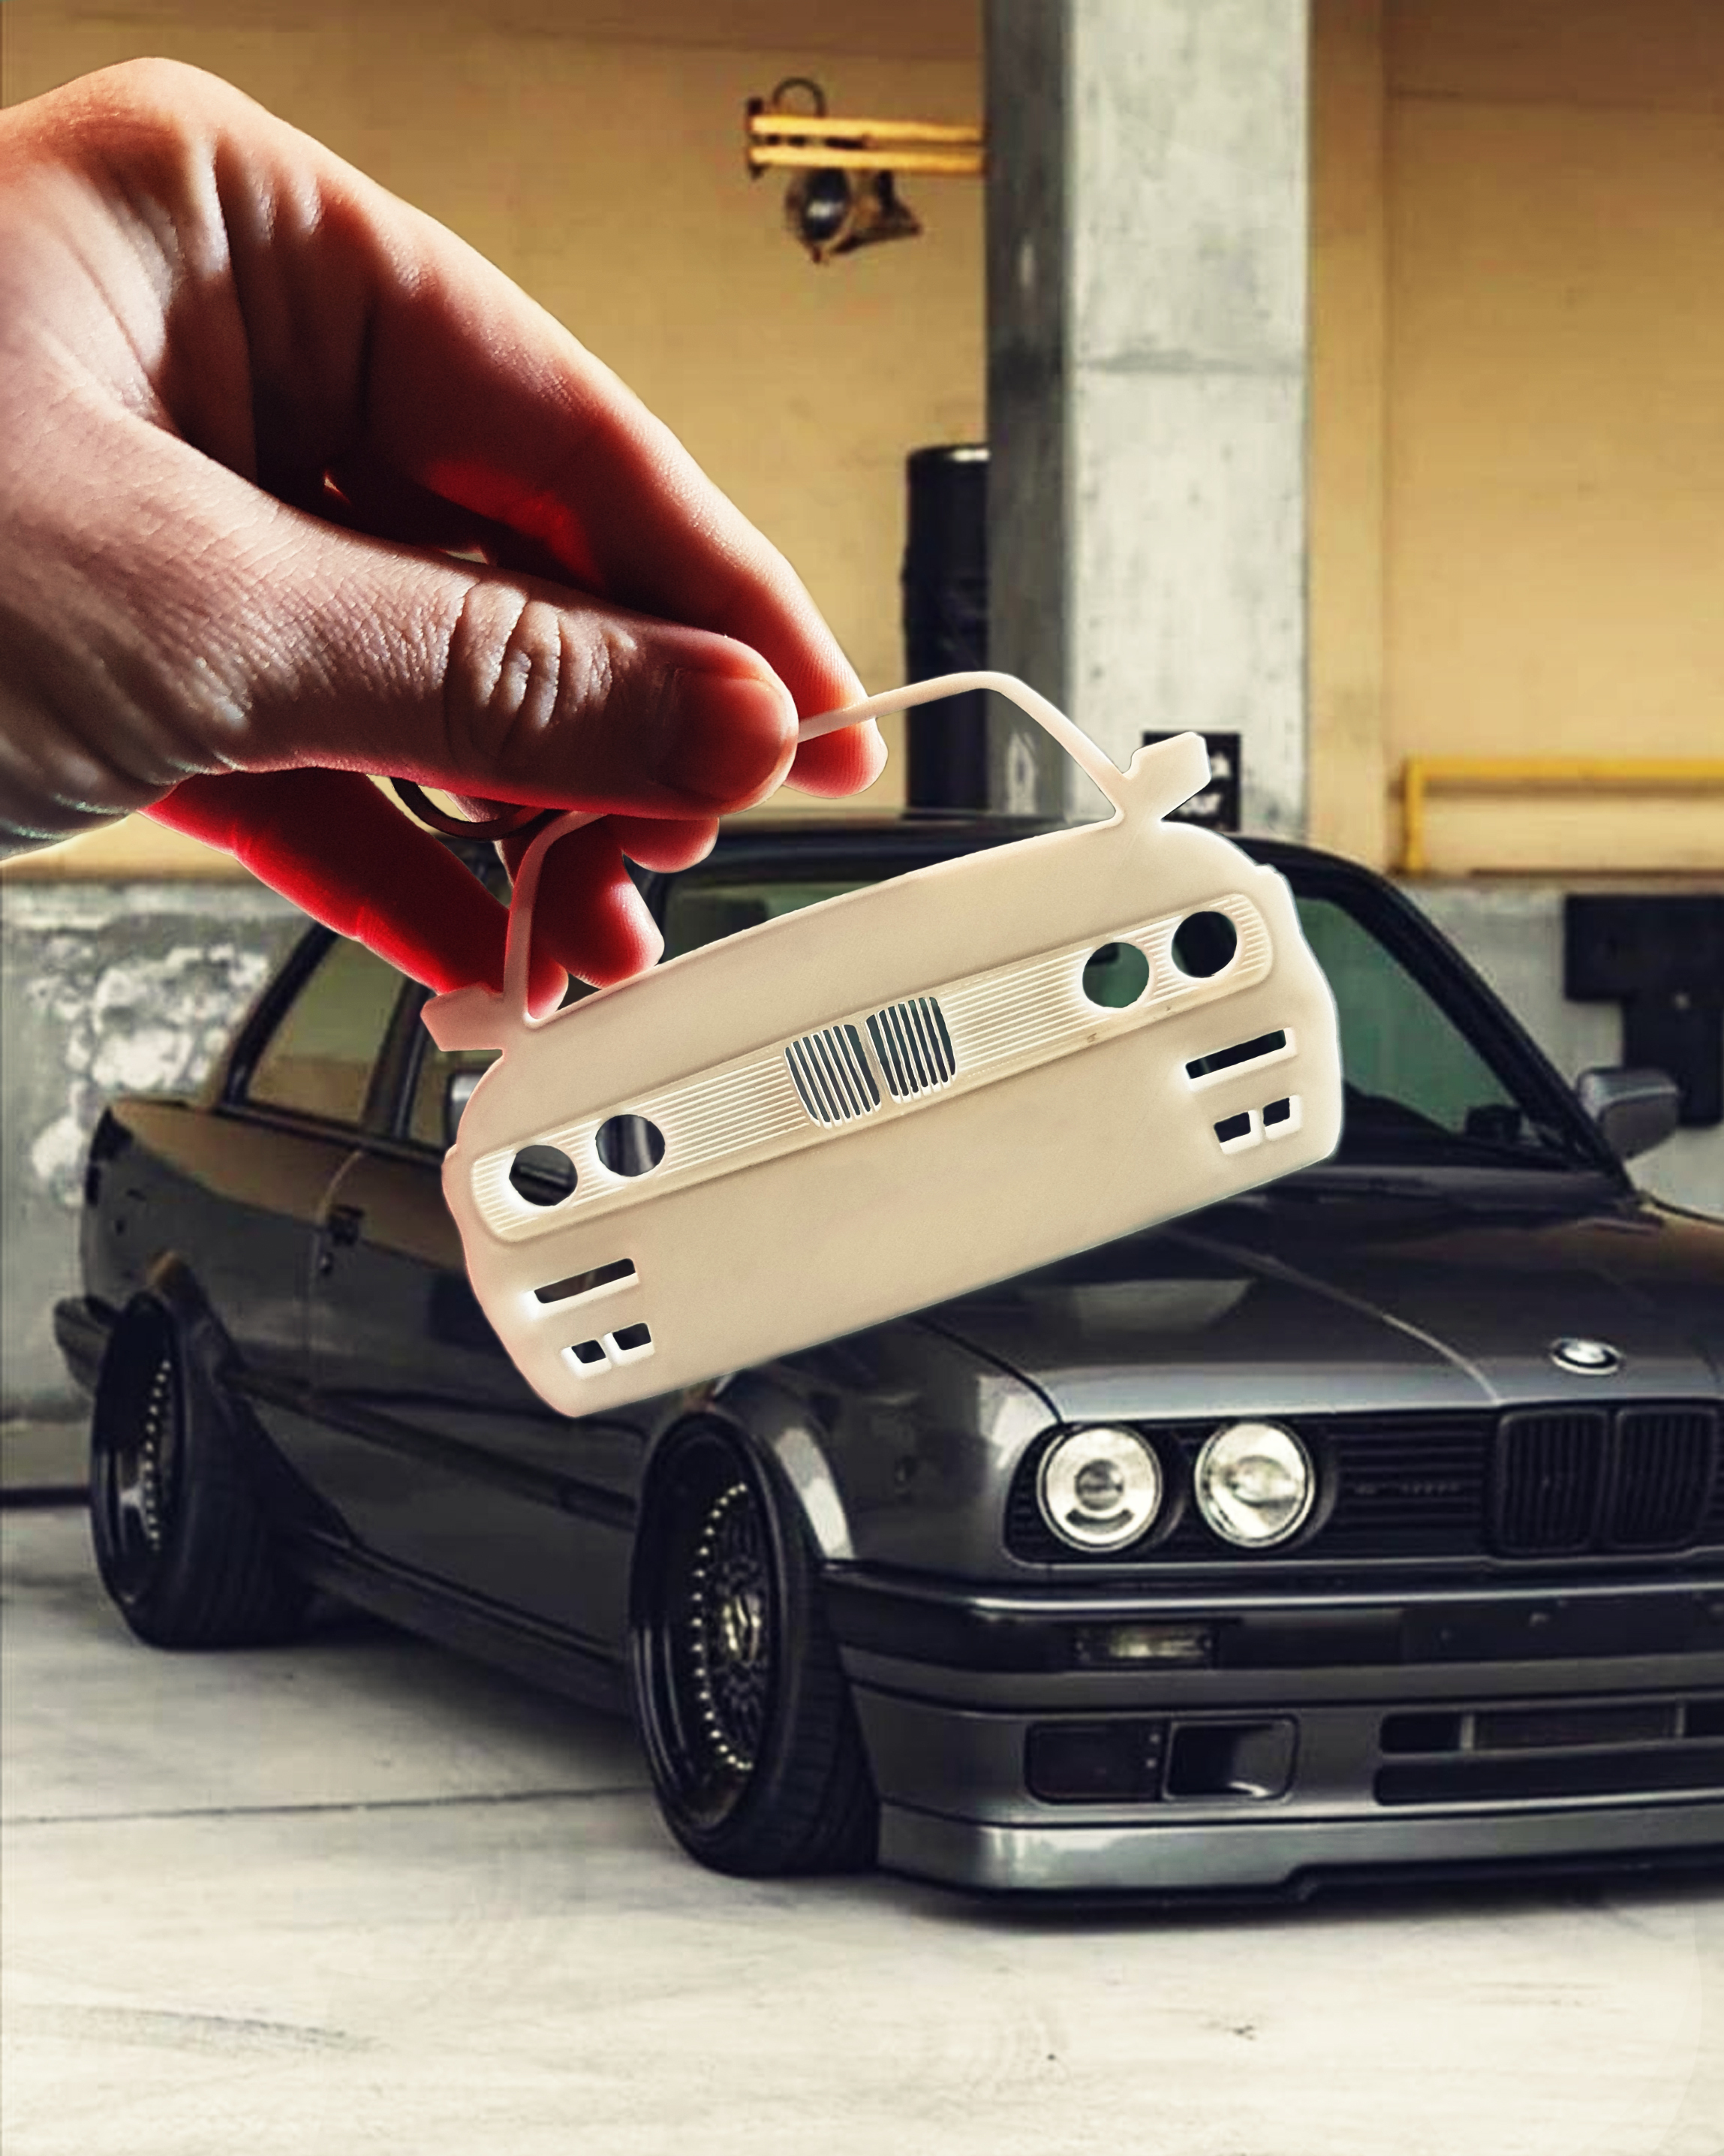 E30-2.jpg Download STL file BMW E30 Front view keychain • Template to 3D print, ioancodoban